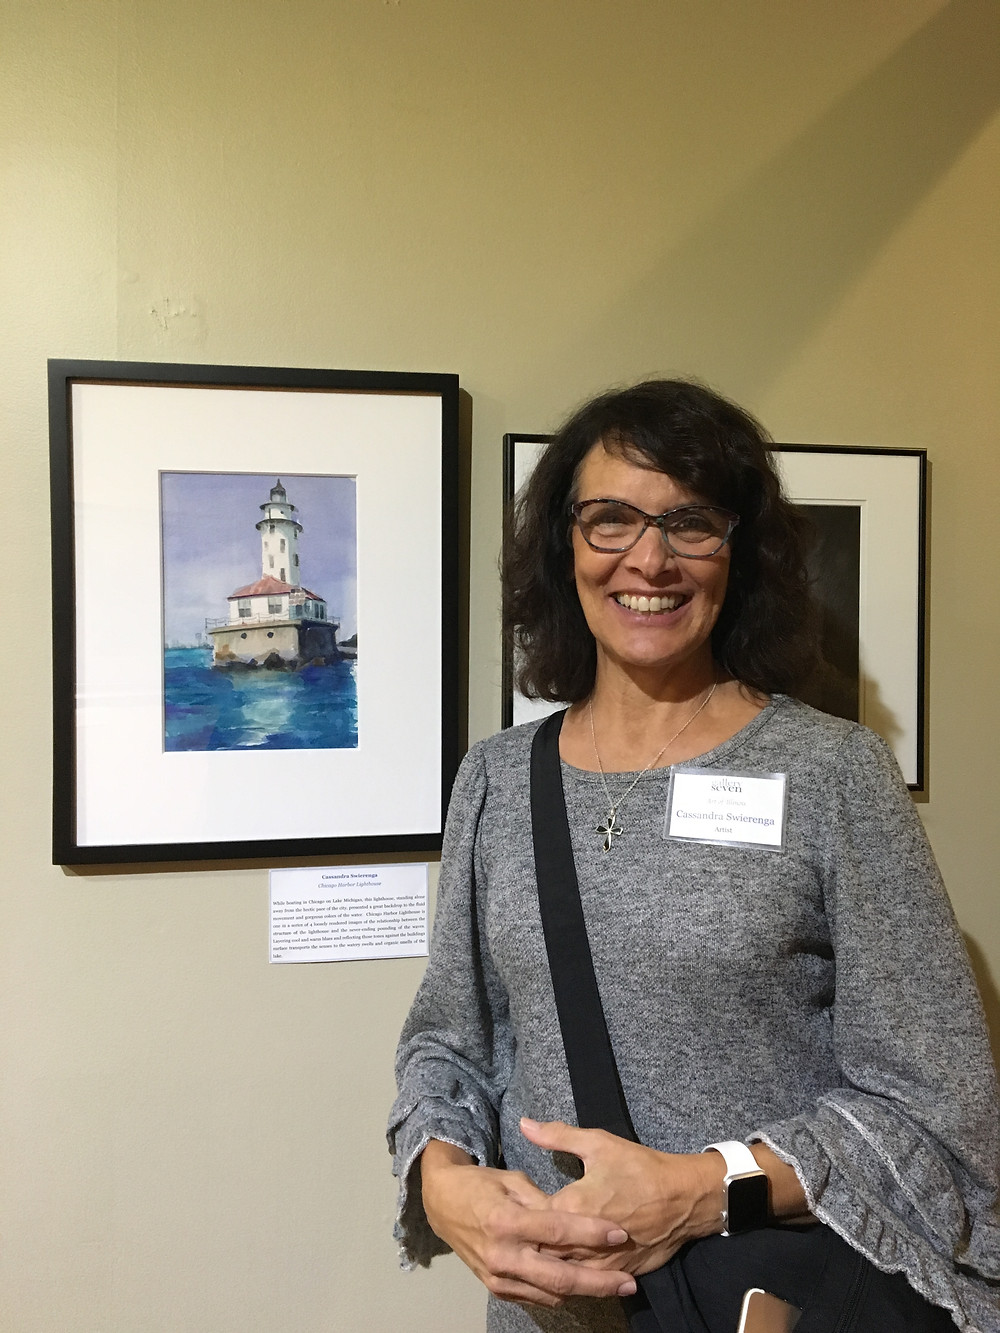 Friend Cassandra Swierenga with her piece in the show.